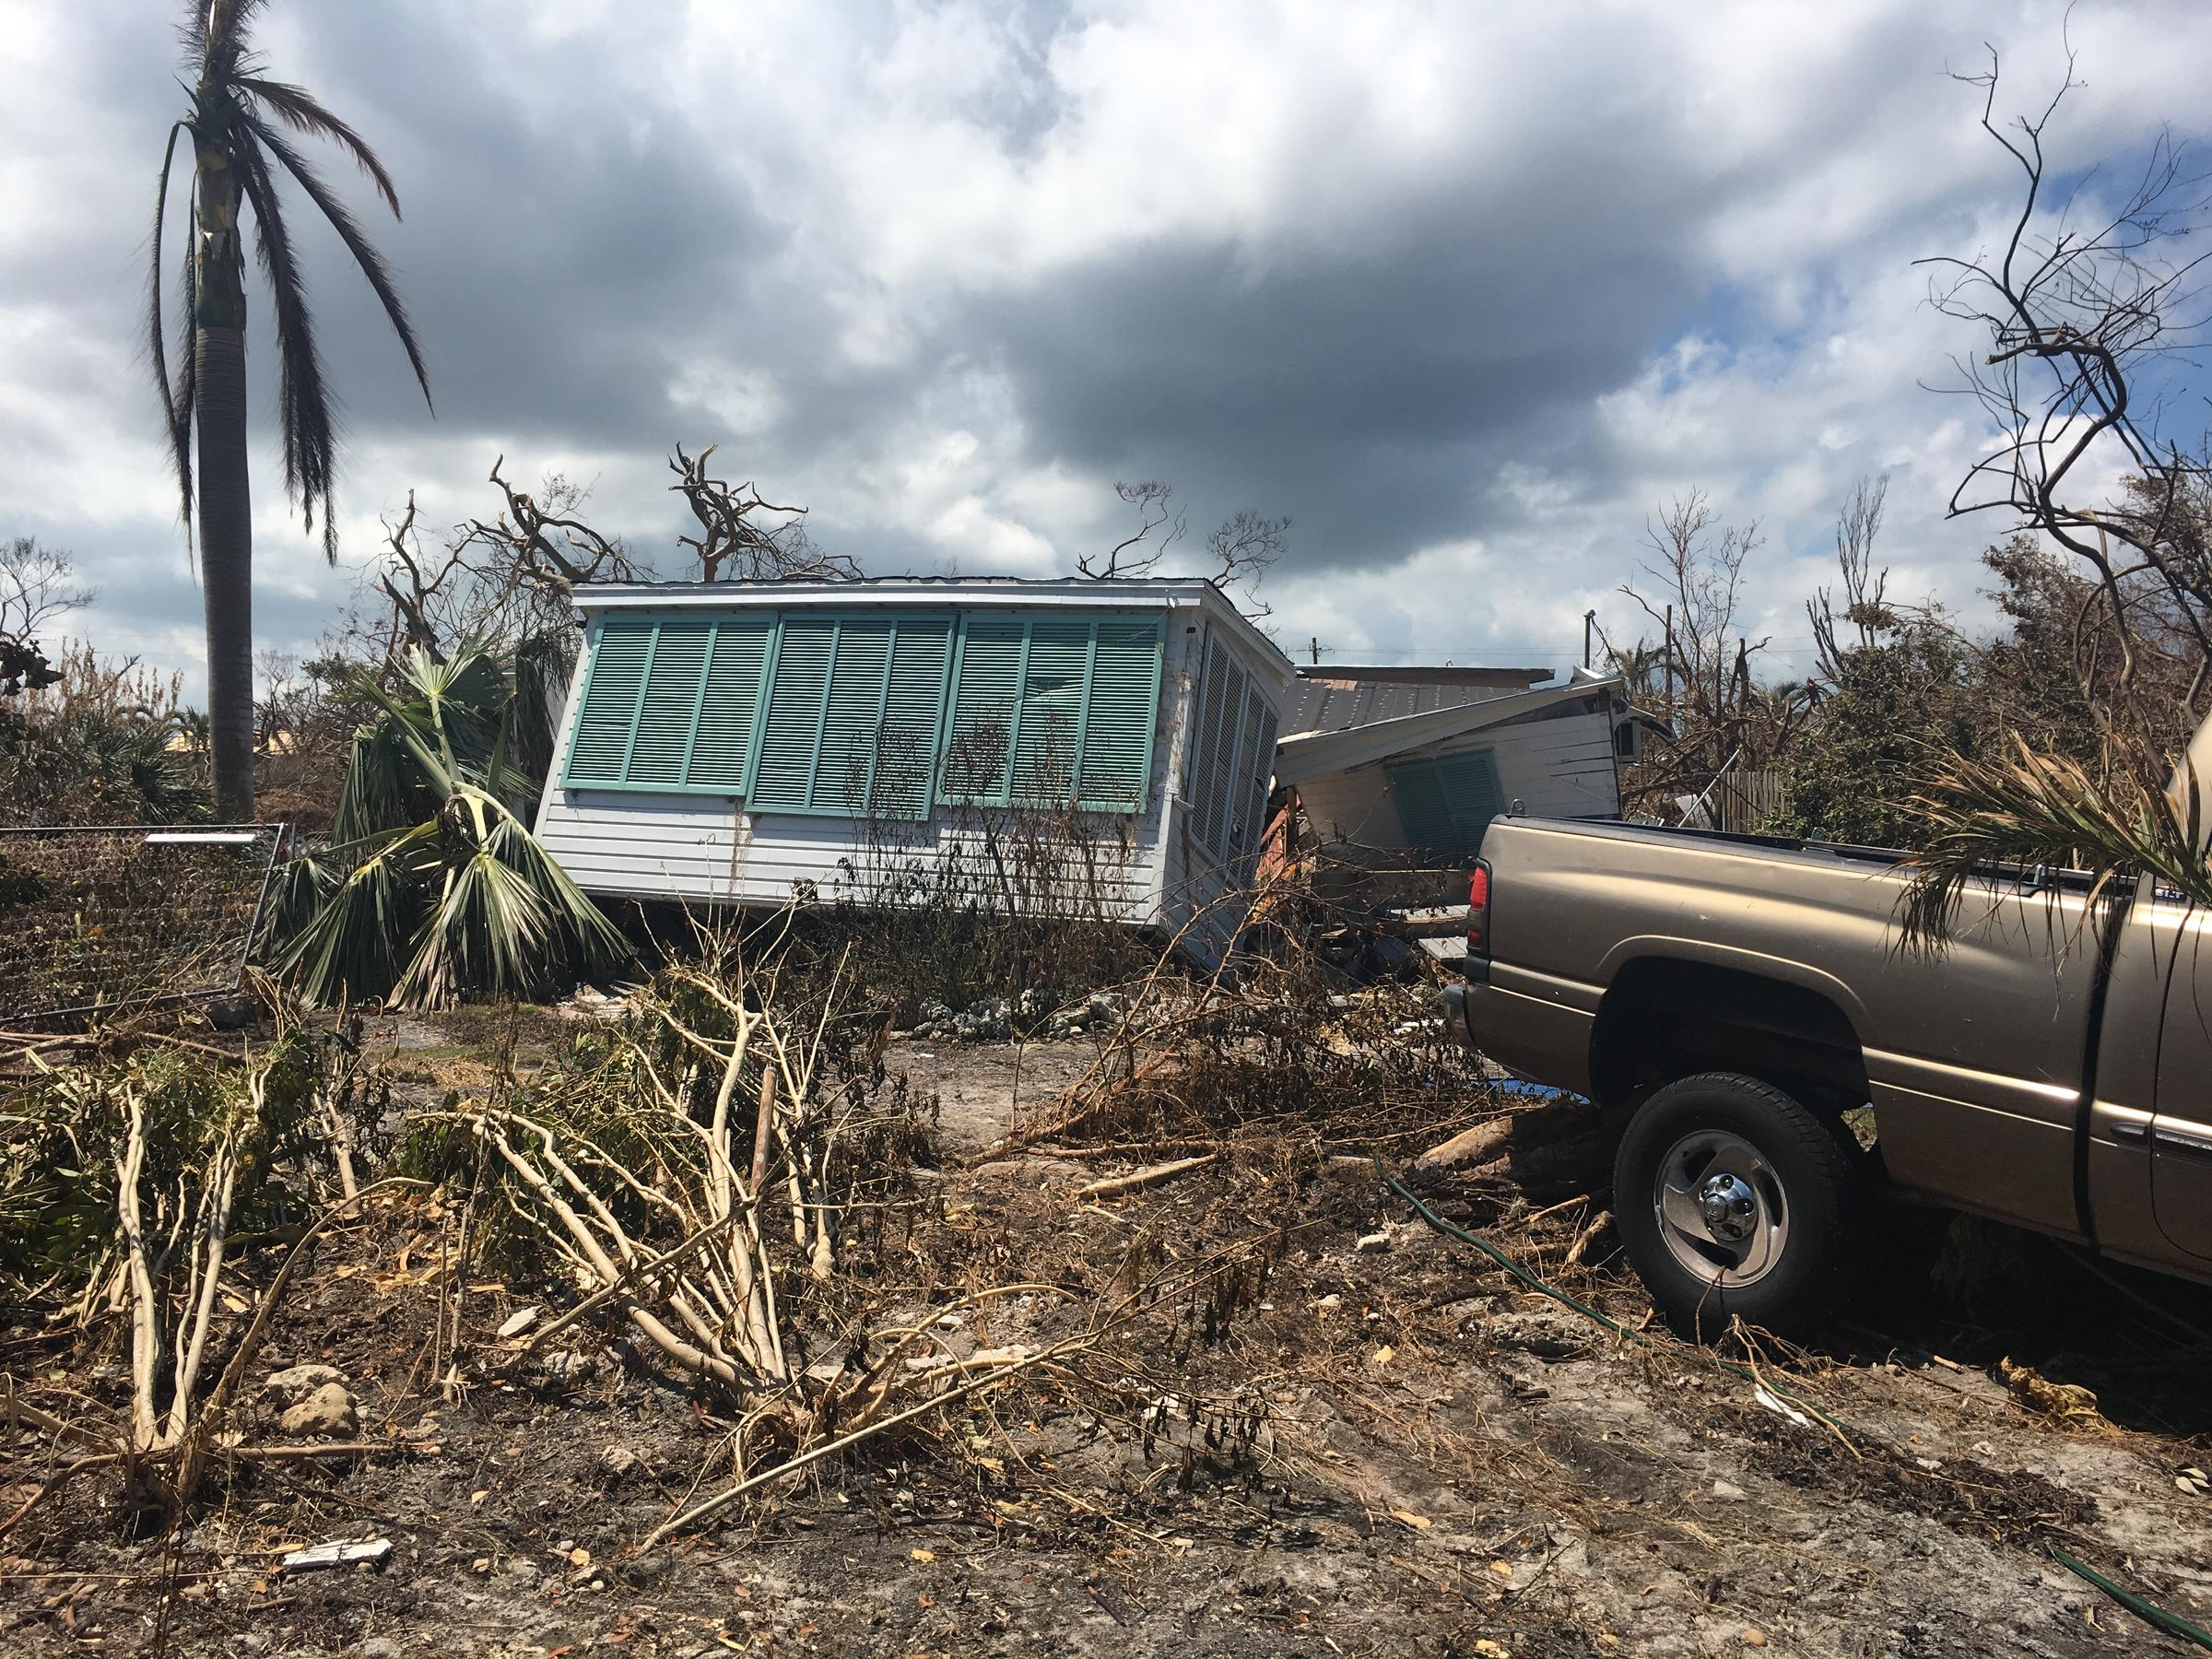 South florida residents reflect on lessons learned from hurricane big pine key in the lower florida keys experienced the brunt of hurricane irmas category 4 publicscrutiny Gallery